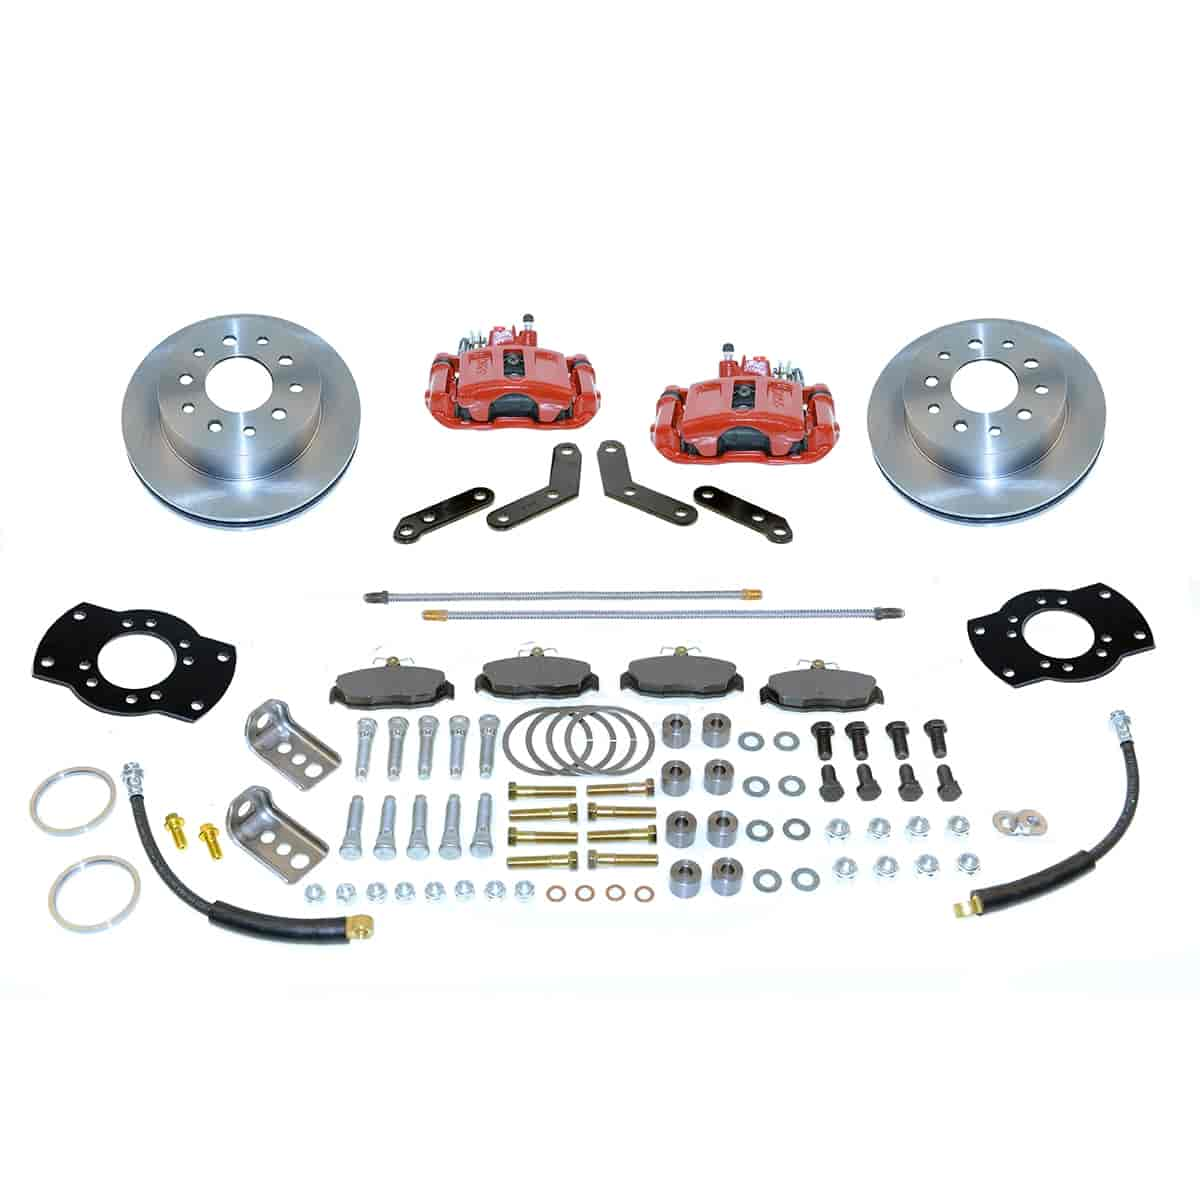 Stainless Steel Brakes A117-1R - Stainless Steel Brakes Single Piston Rear Drum to Disc Brake Conversion Kits